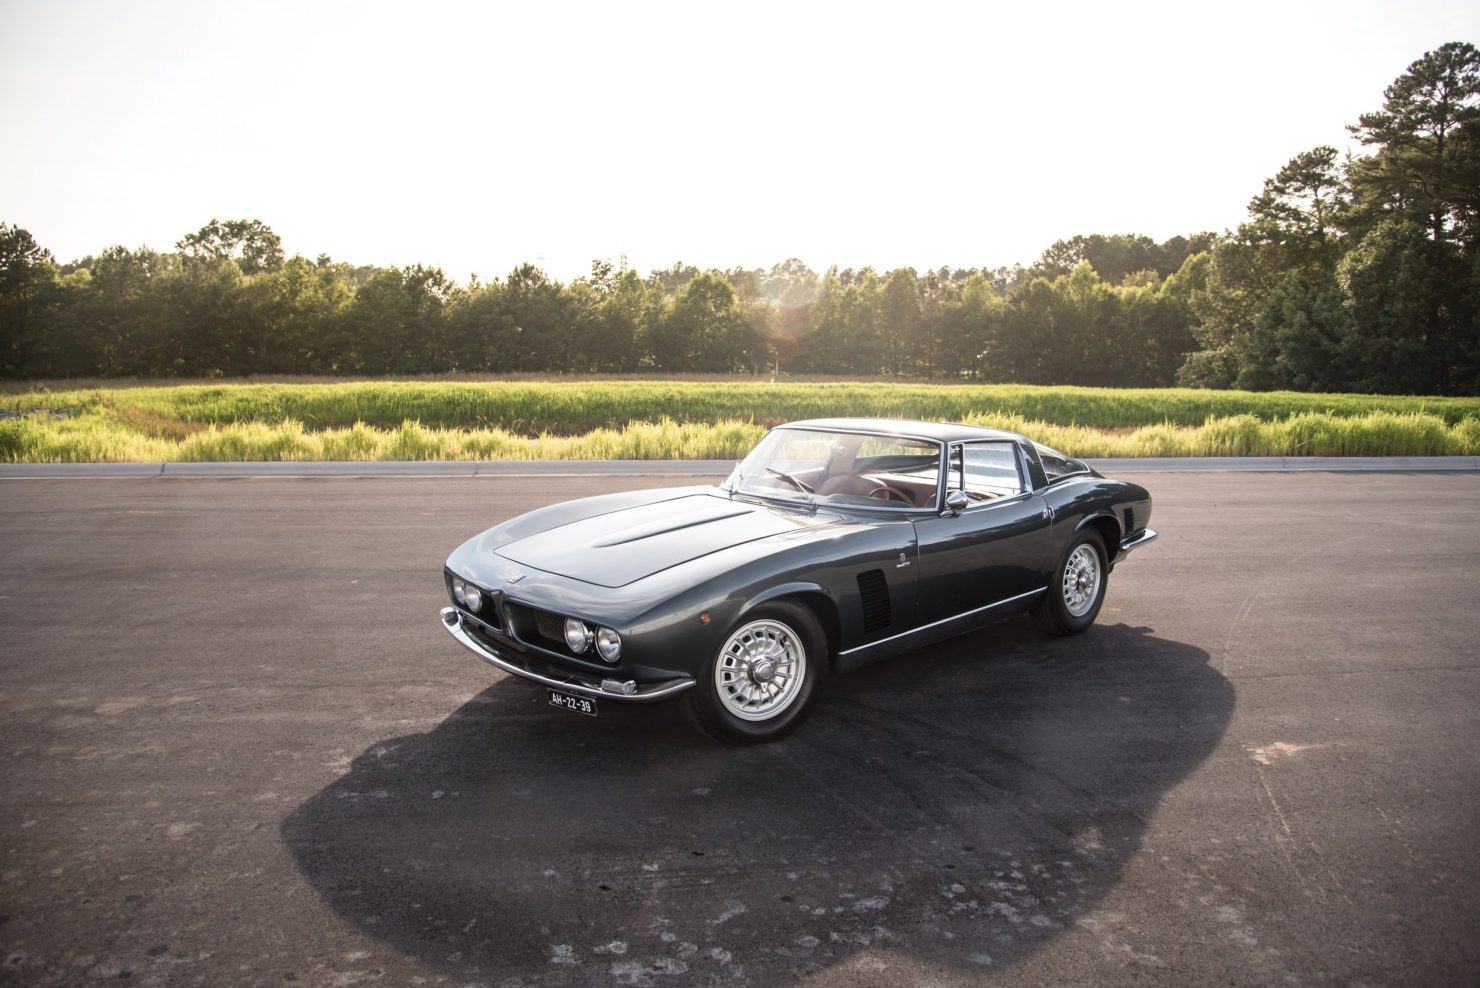 iso grifo car 18 1480x988 - 1966 Iso Grifo GL Series I